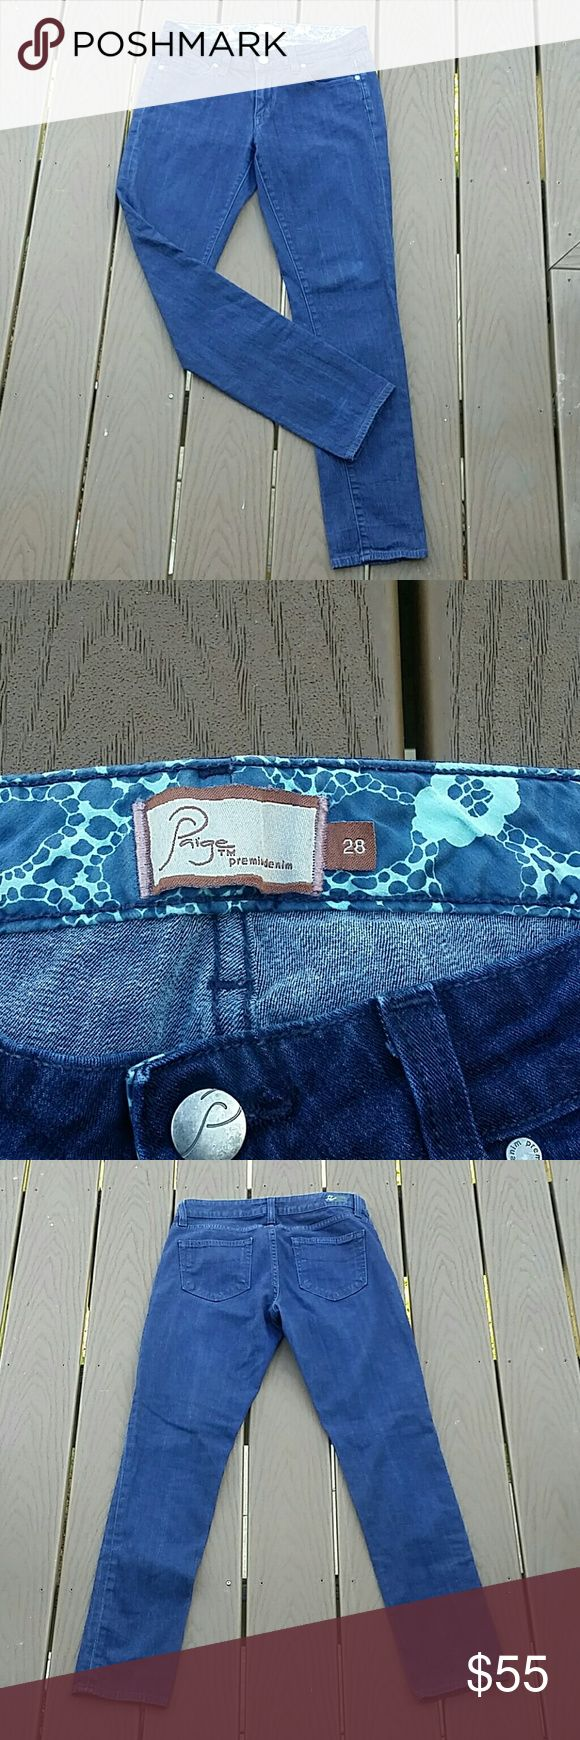 """Paige skyline ankle peg jeans - size 28 Paige jeans in a dark wash. Skyline skinny peg. Size 28. 5 pocket. Excellent condition, no flaws or stains. Inseam measures 35"""" rise measures 8.5"""". Paige Jeans Jeans Skinny"""